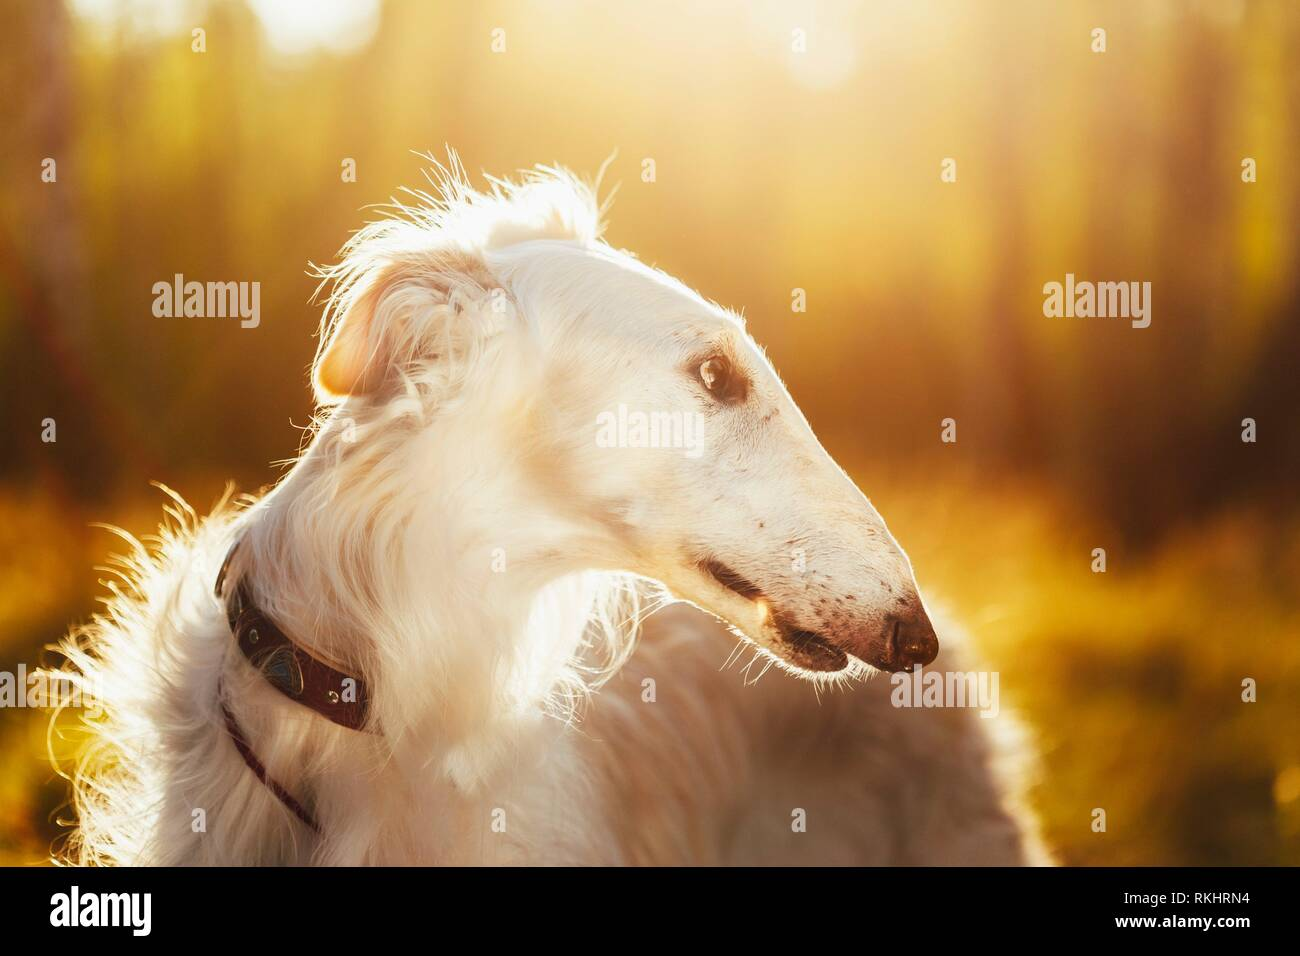 Close up of White Russian Hunting Dog, Sighthound, Russkaya Psovaya Borzaya, Psovoi. Sunset sunlight. Stock Photo